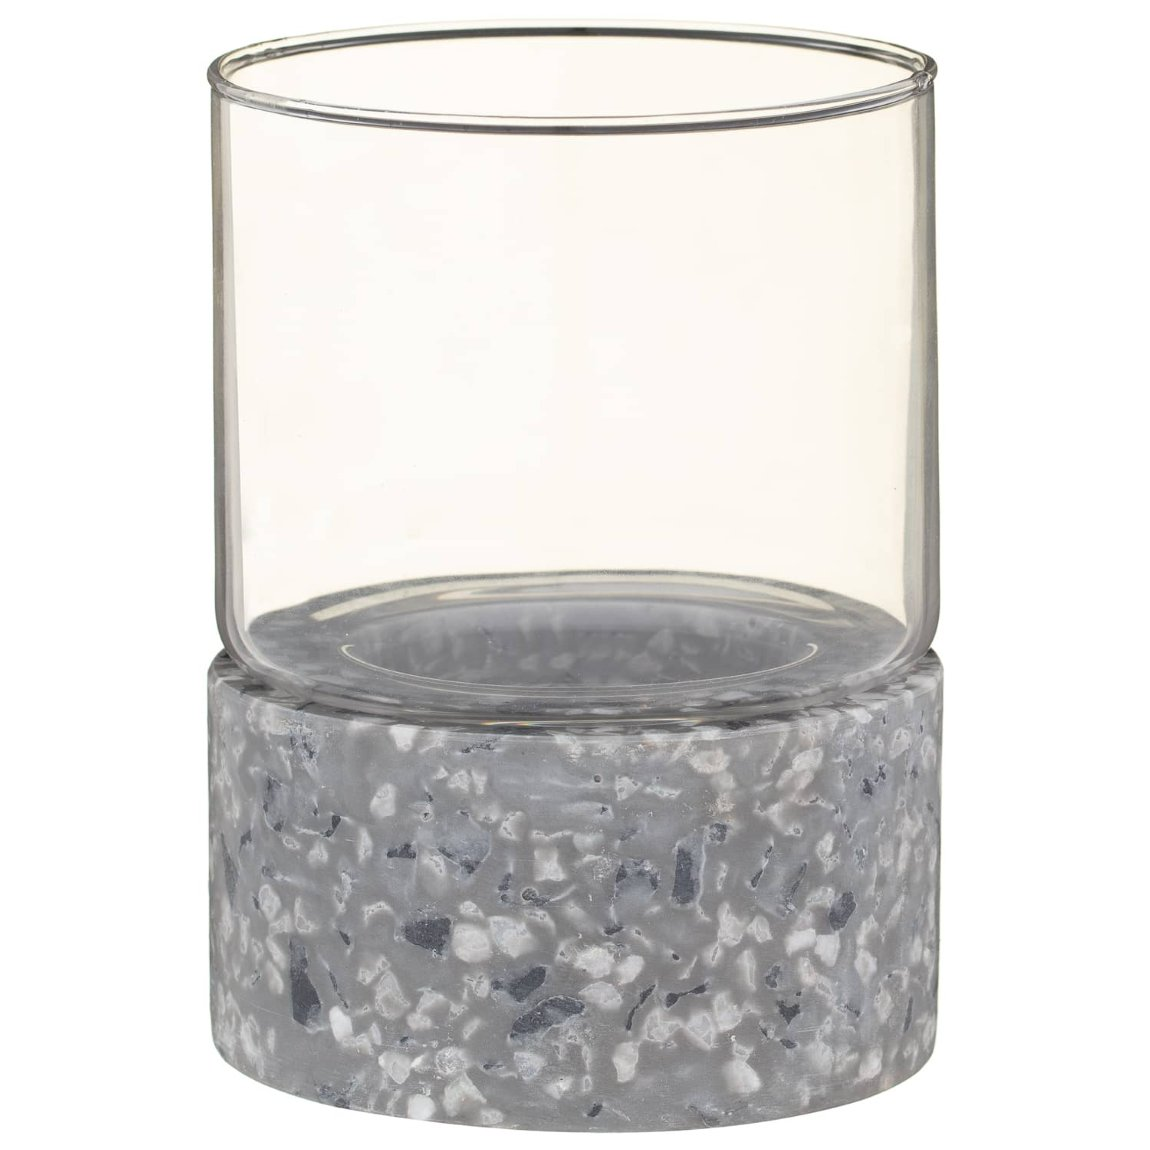 Hurricane Terrazzo Candle Holder - Grey